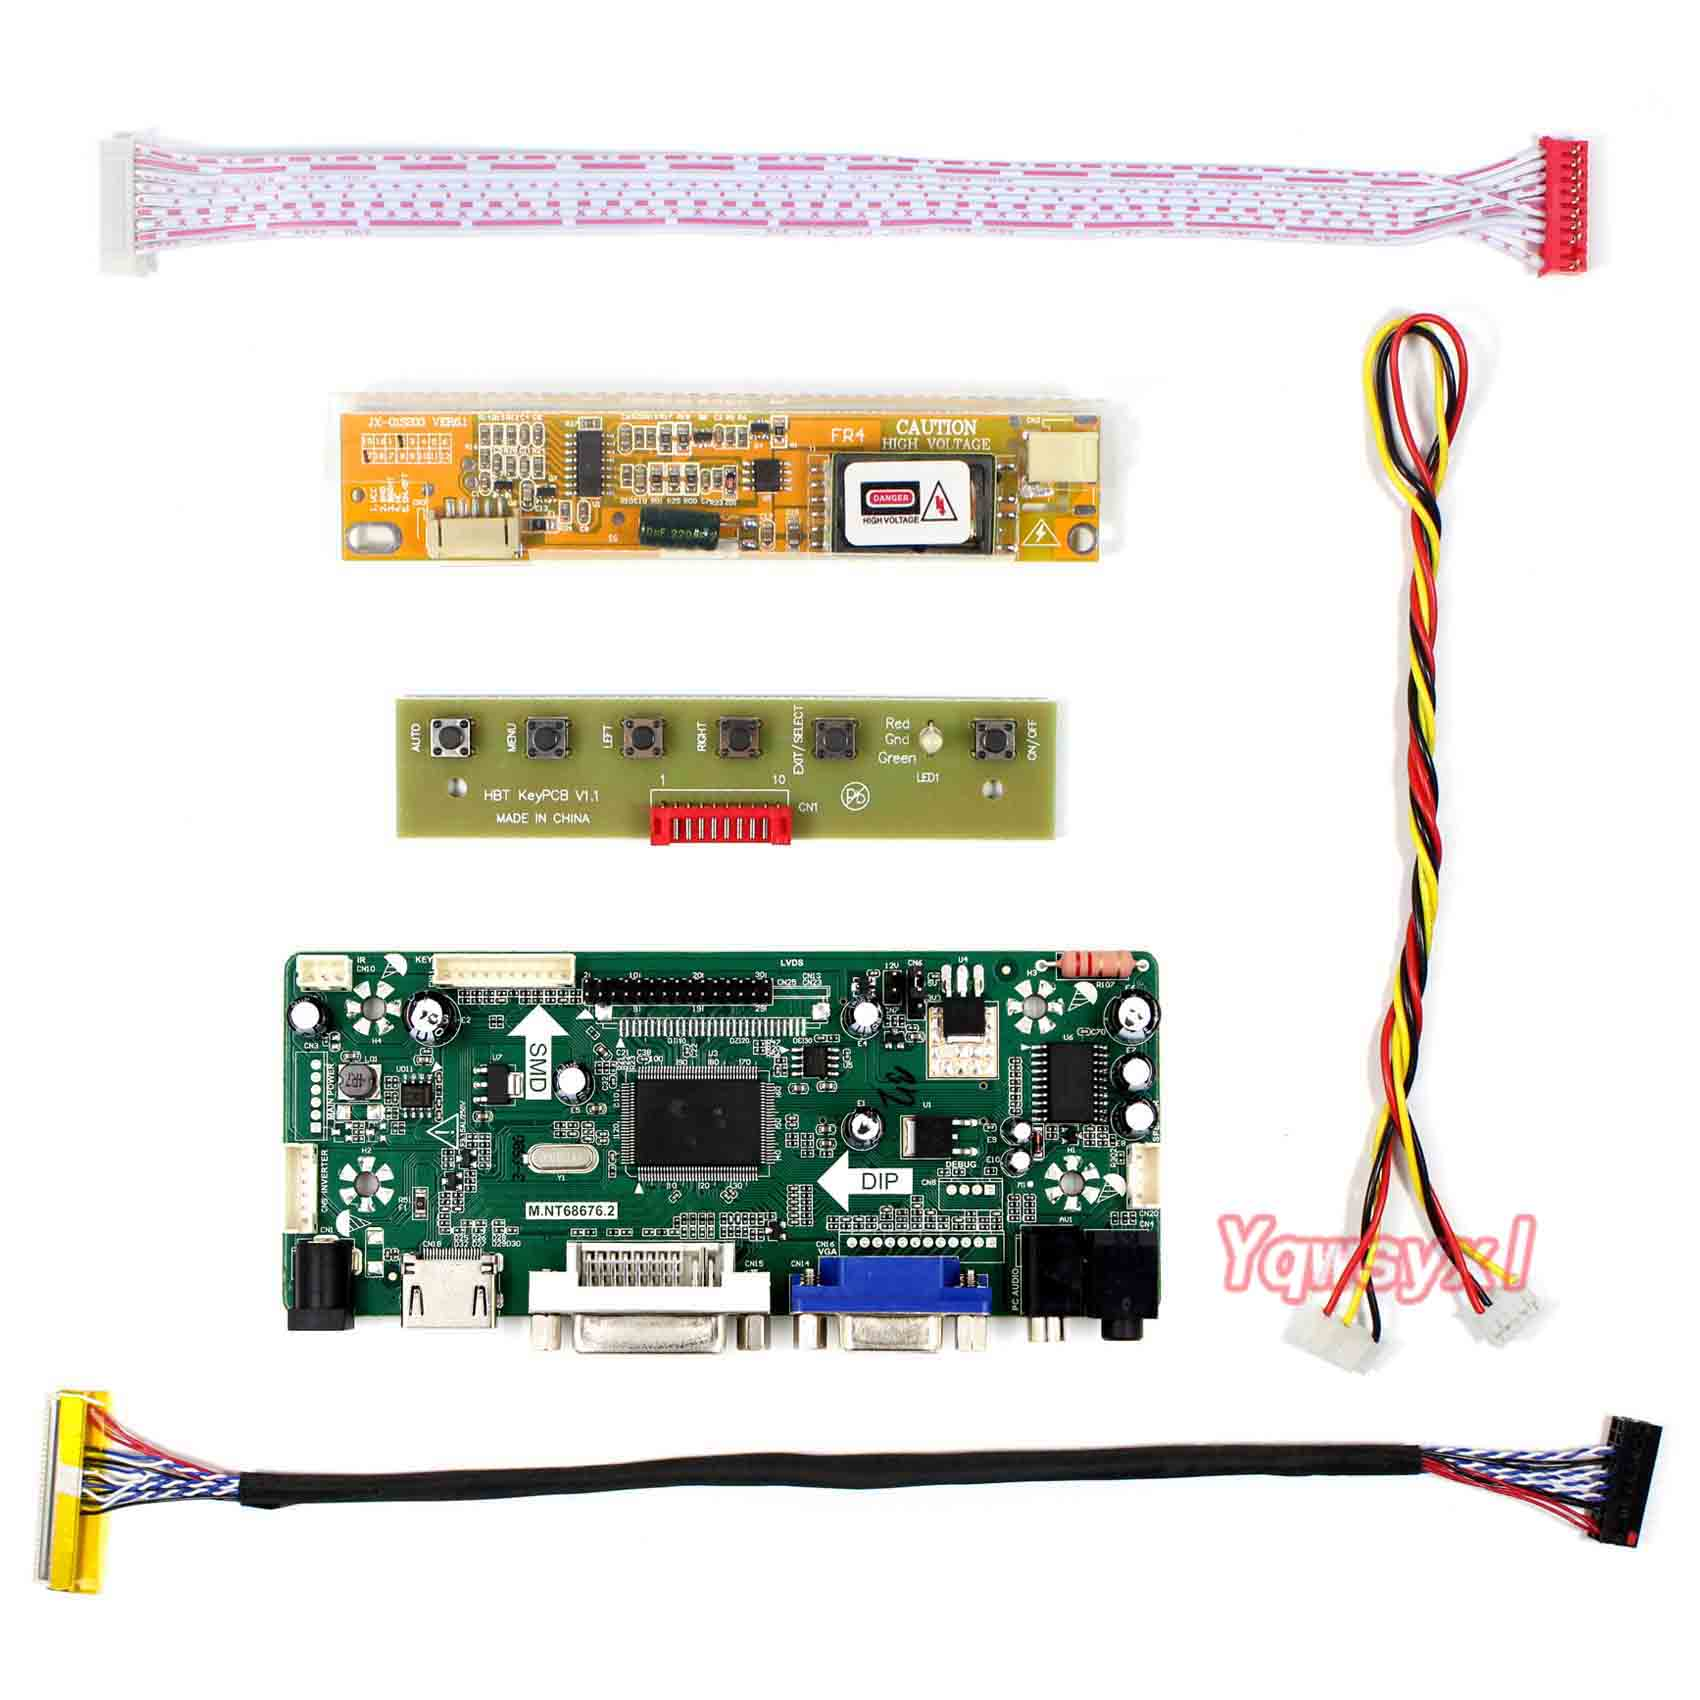 Yqwsyxl Control Board Monitor Kit For B154EW08 V1 V.1  HDMI + DVI + VGA LCD LED Screen Controller Board Driver